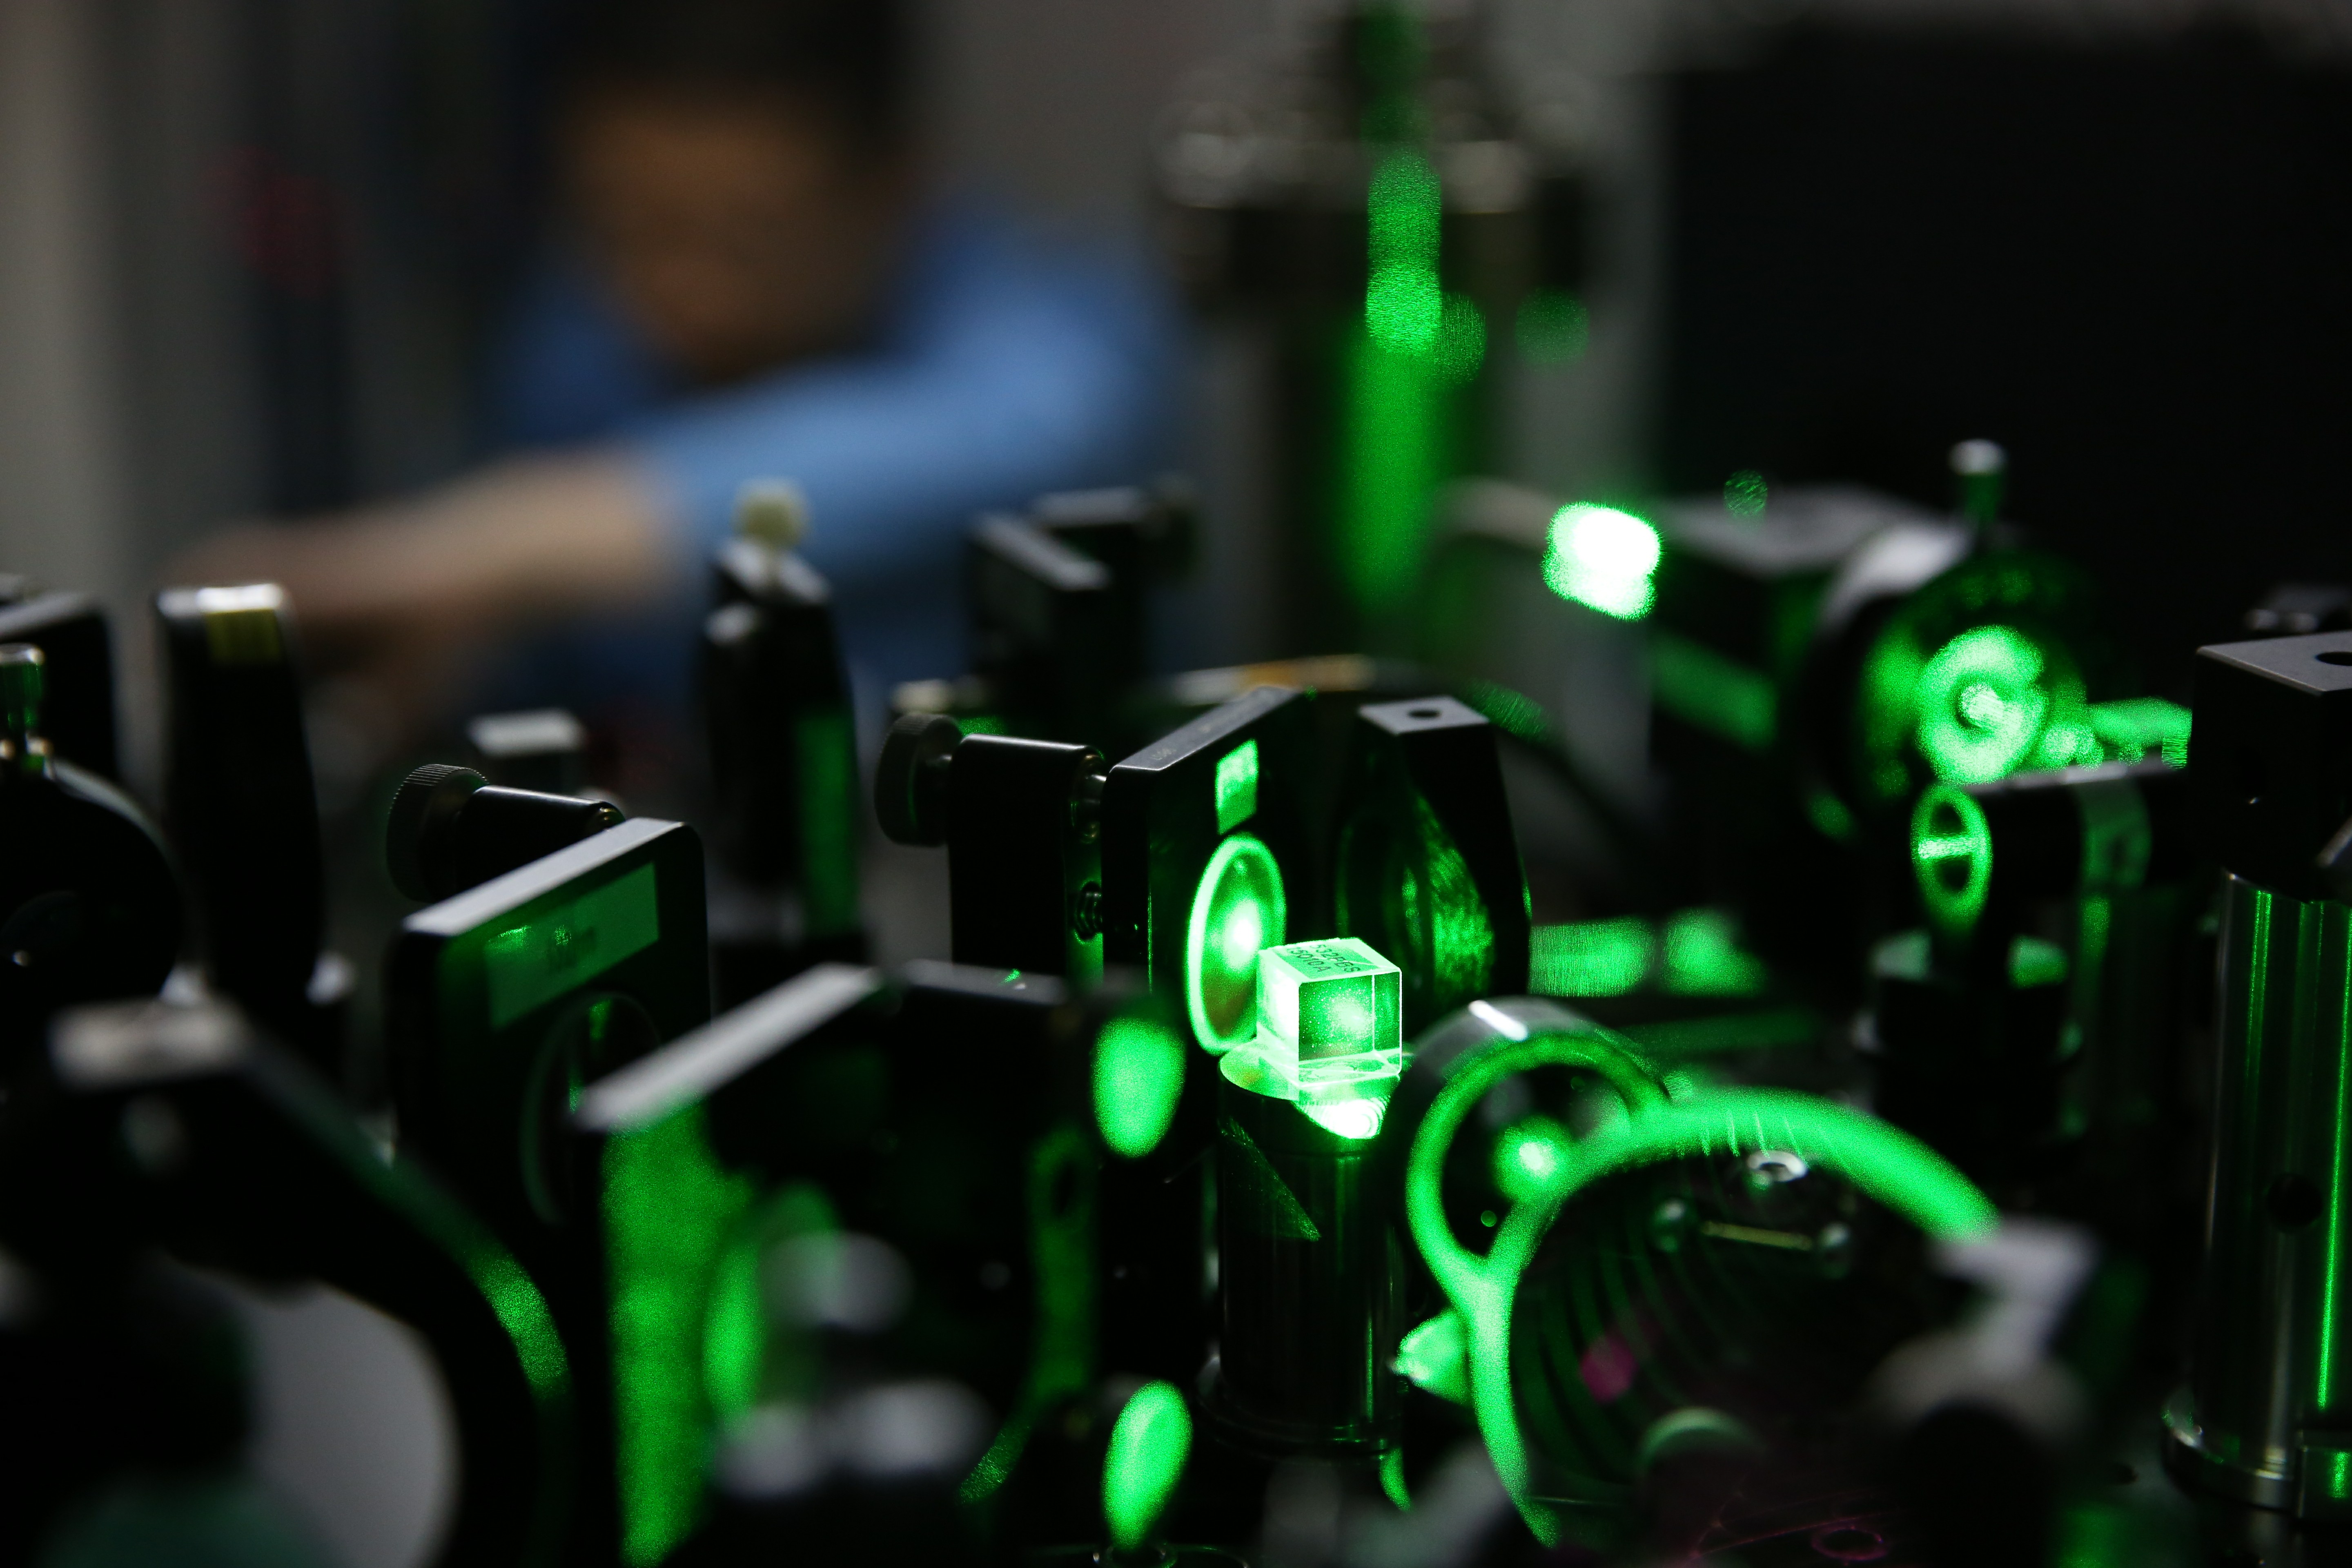 A Chinese researcher works on an ultracold atom device at the CAS-Alibaba Quantum Computing Laboratory in Shanghai, China, 30 July 2015.  Aliyun, the cloud-computing arm of Chinese e-commerce giant Alibaba Group Holding Ltd., is co-founding a quantum computing laboratory with the Chinese Academy of Sciences to help secure its data centers and develop a new type of computer. The formation of the CAS-Alibaba Quantum Computing Laboratory in Shanghai is similar to research initiatives by Microsoft Corp., Google Inc., International Business Machines Corp. and various government-backed scientific laboratories. Researchers are trying to find practical applications in computing and cryptography from the theoretically unique properties of subatomic particles. Quantum mechanics may lead to much faster calculations and almost impossible to break cryptography, its promoters argue.No Use China. No Use France.